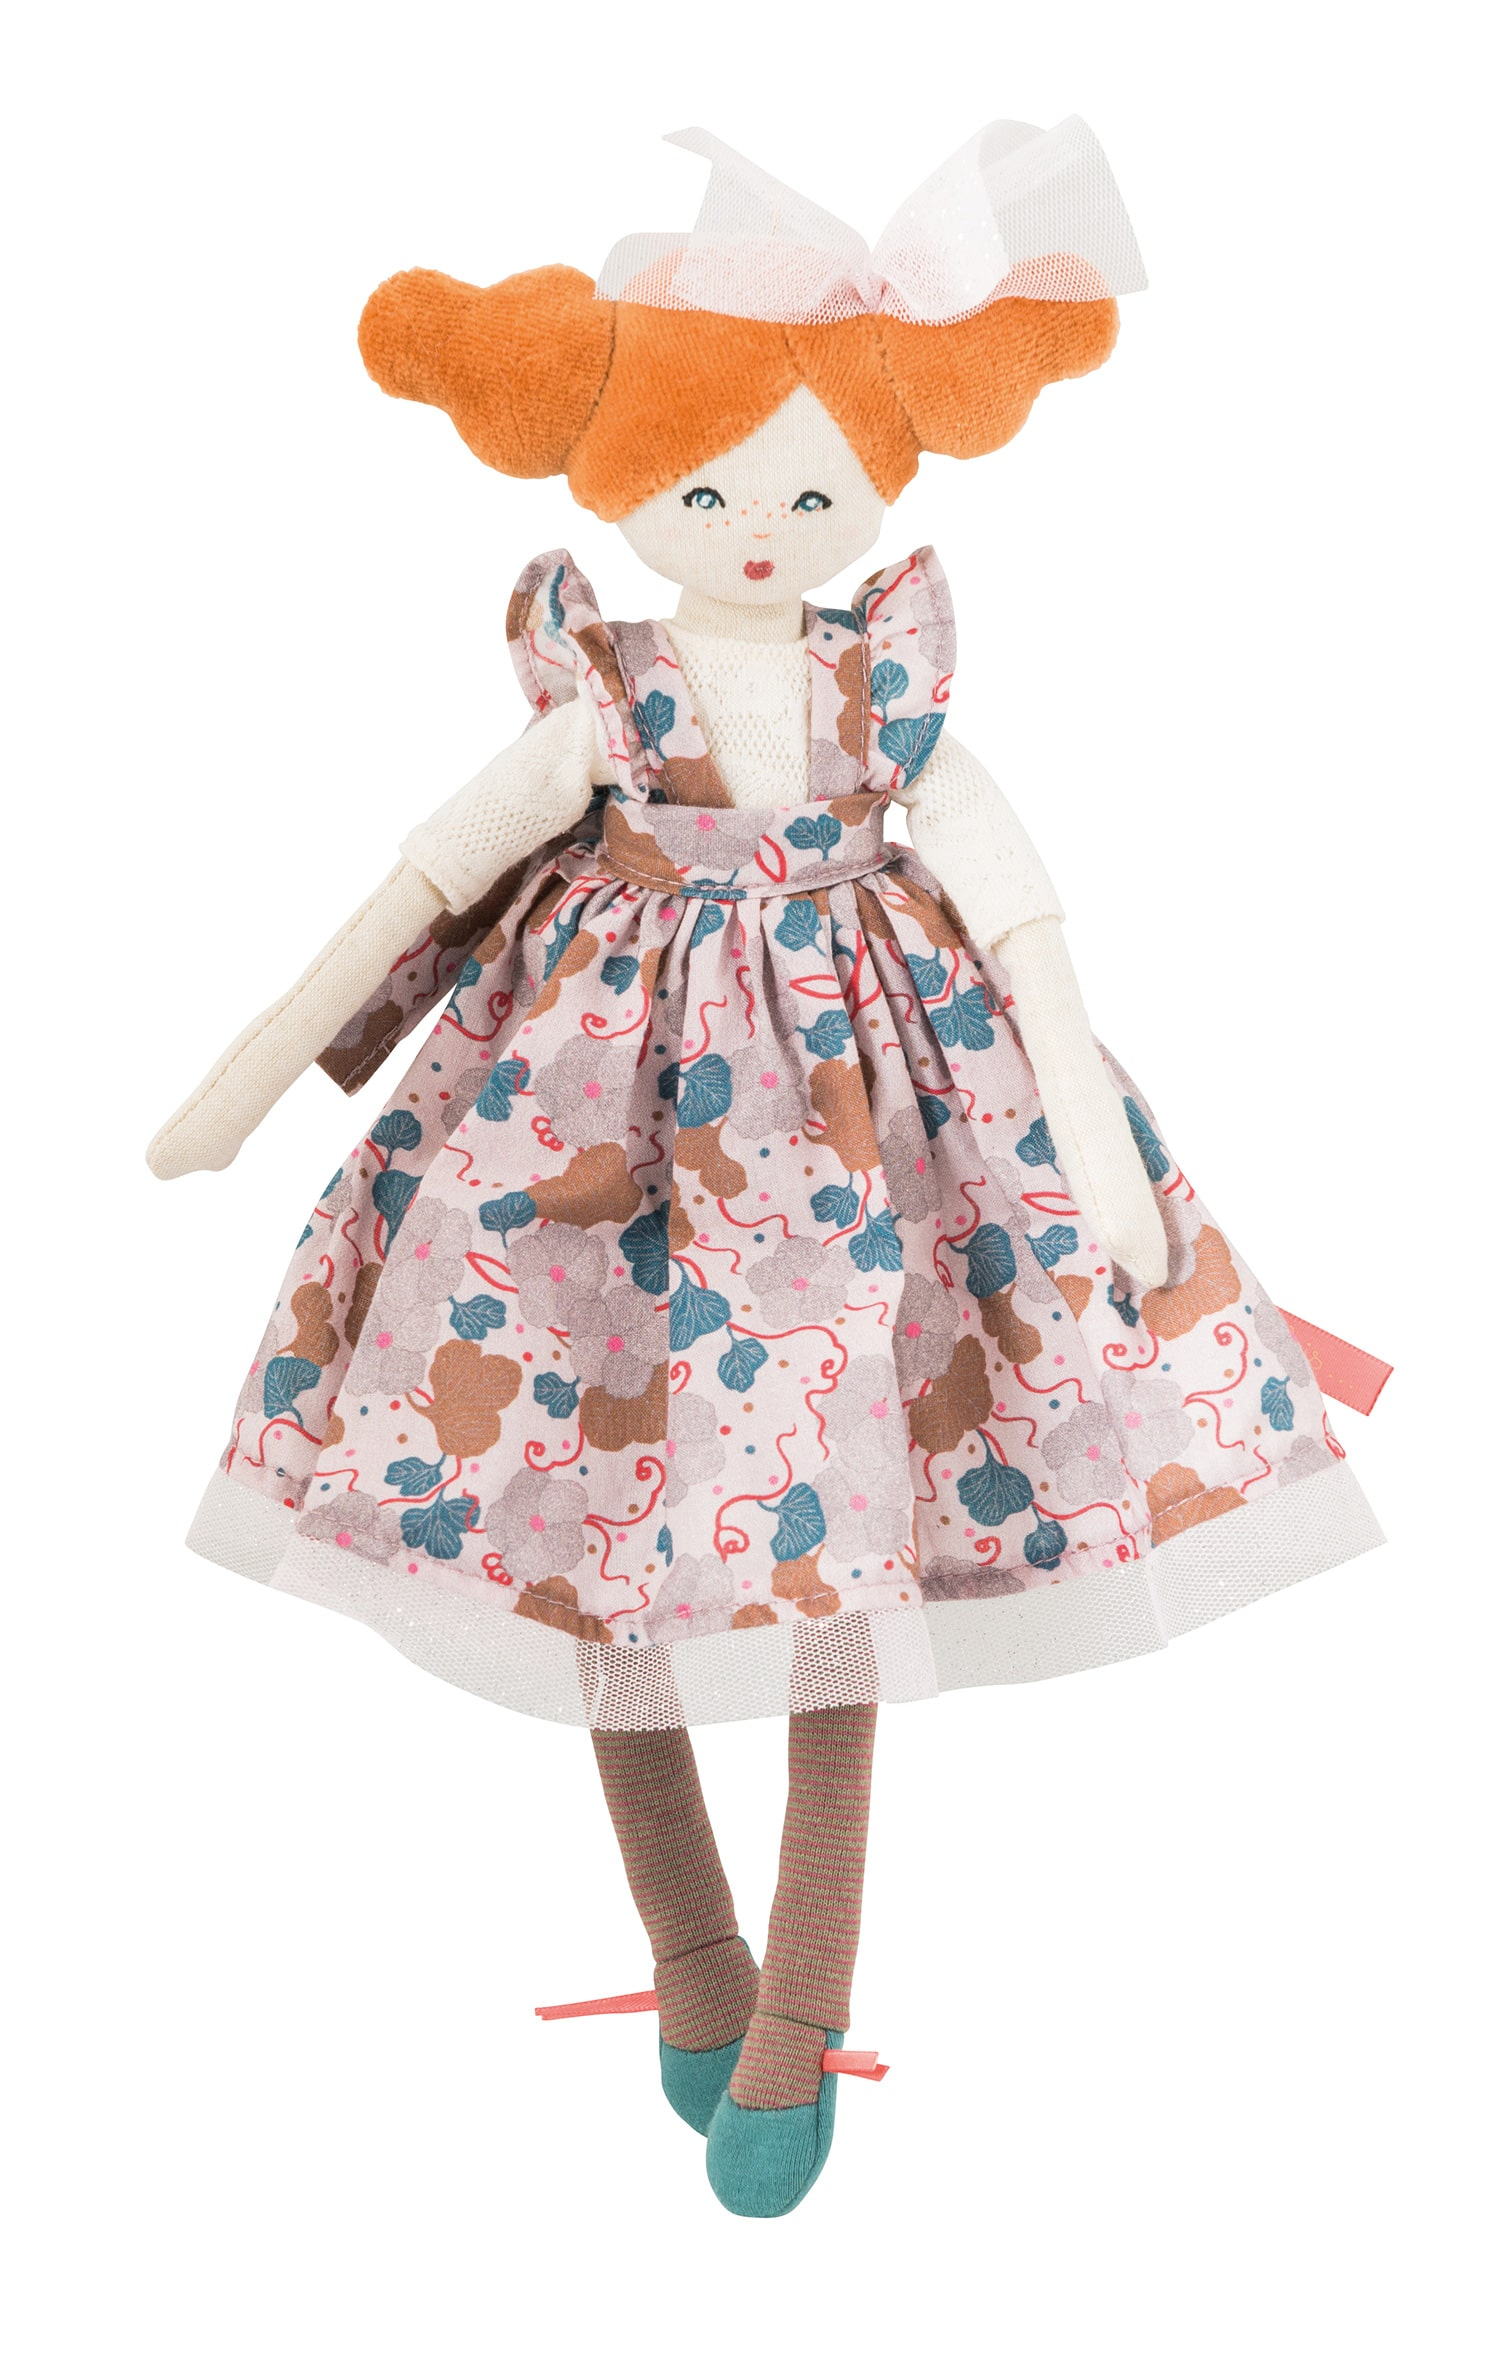 charming doll, soft toy - Moulin Roty toys Australia